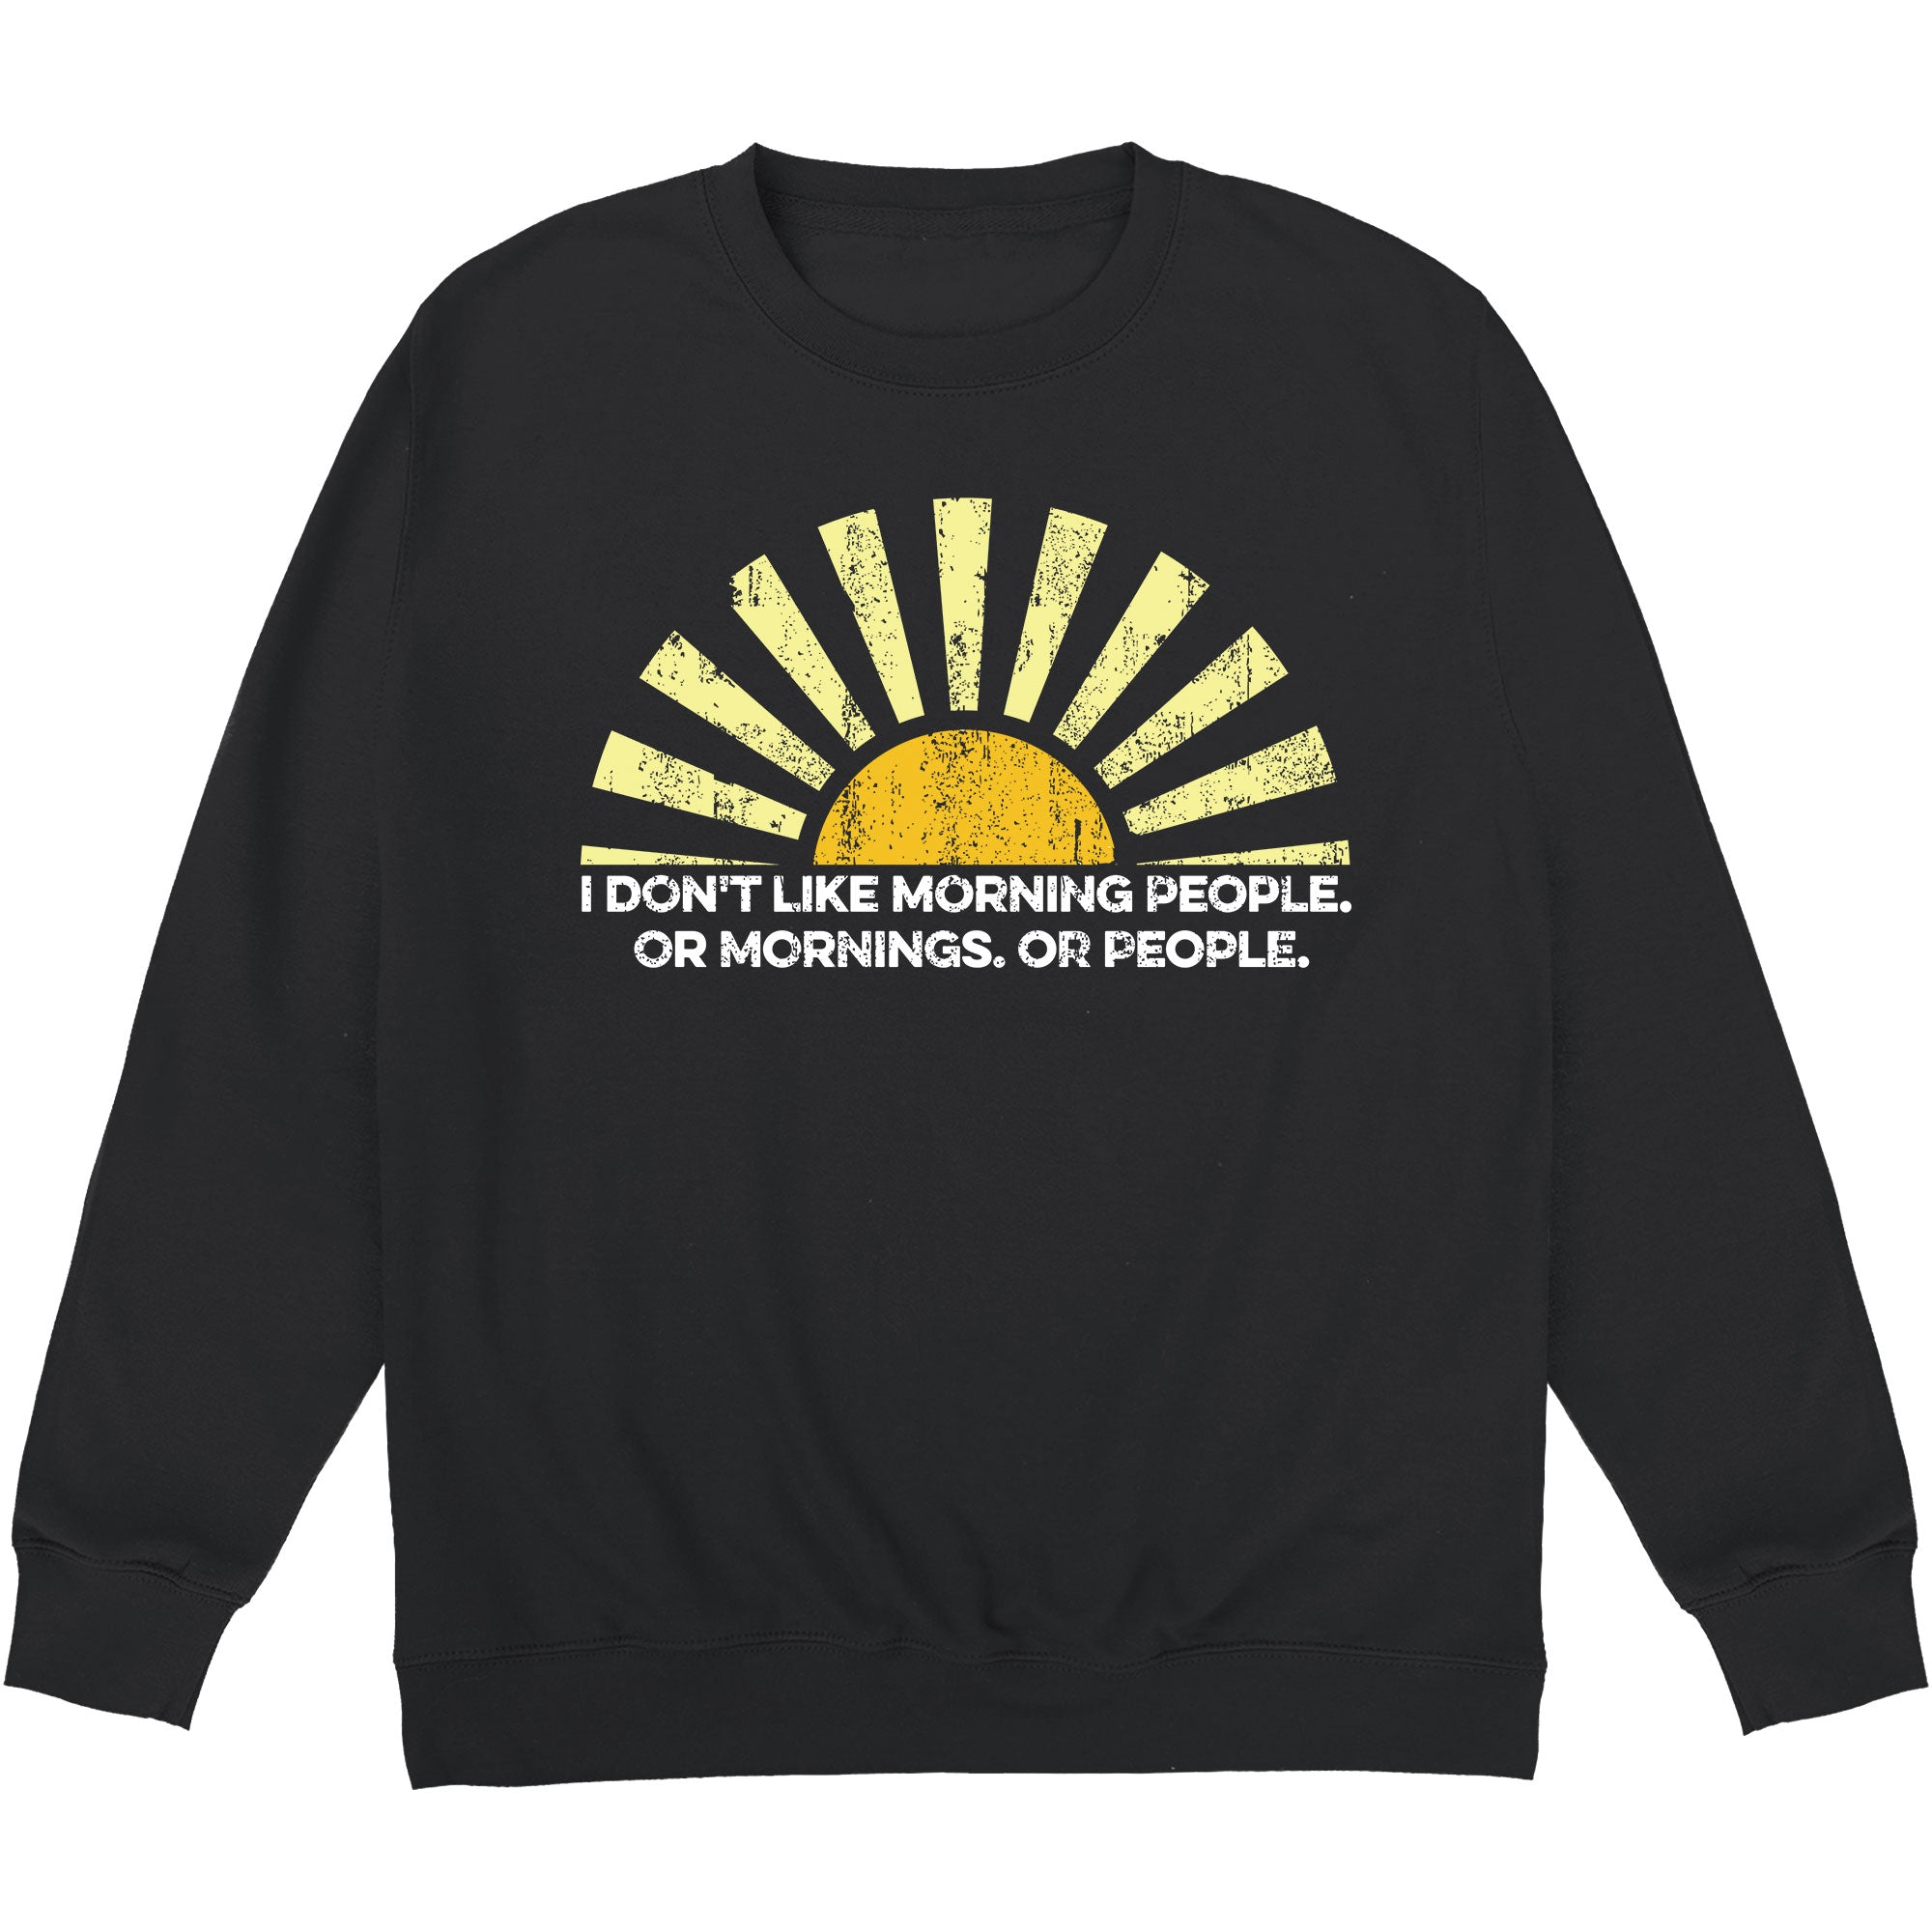 CHEAP Morning People Sweatshirt 24322677205 – Clothing Accessories